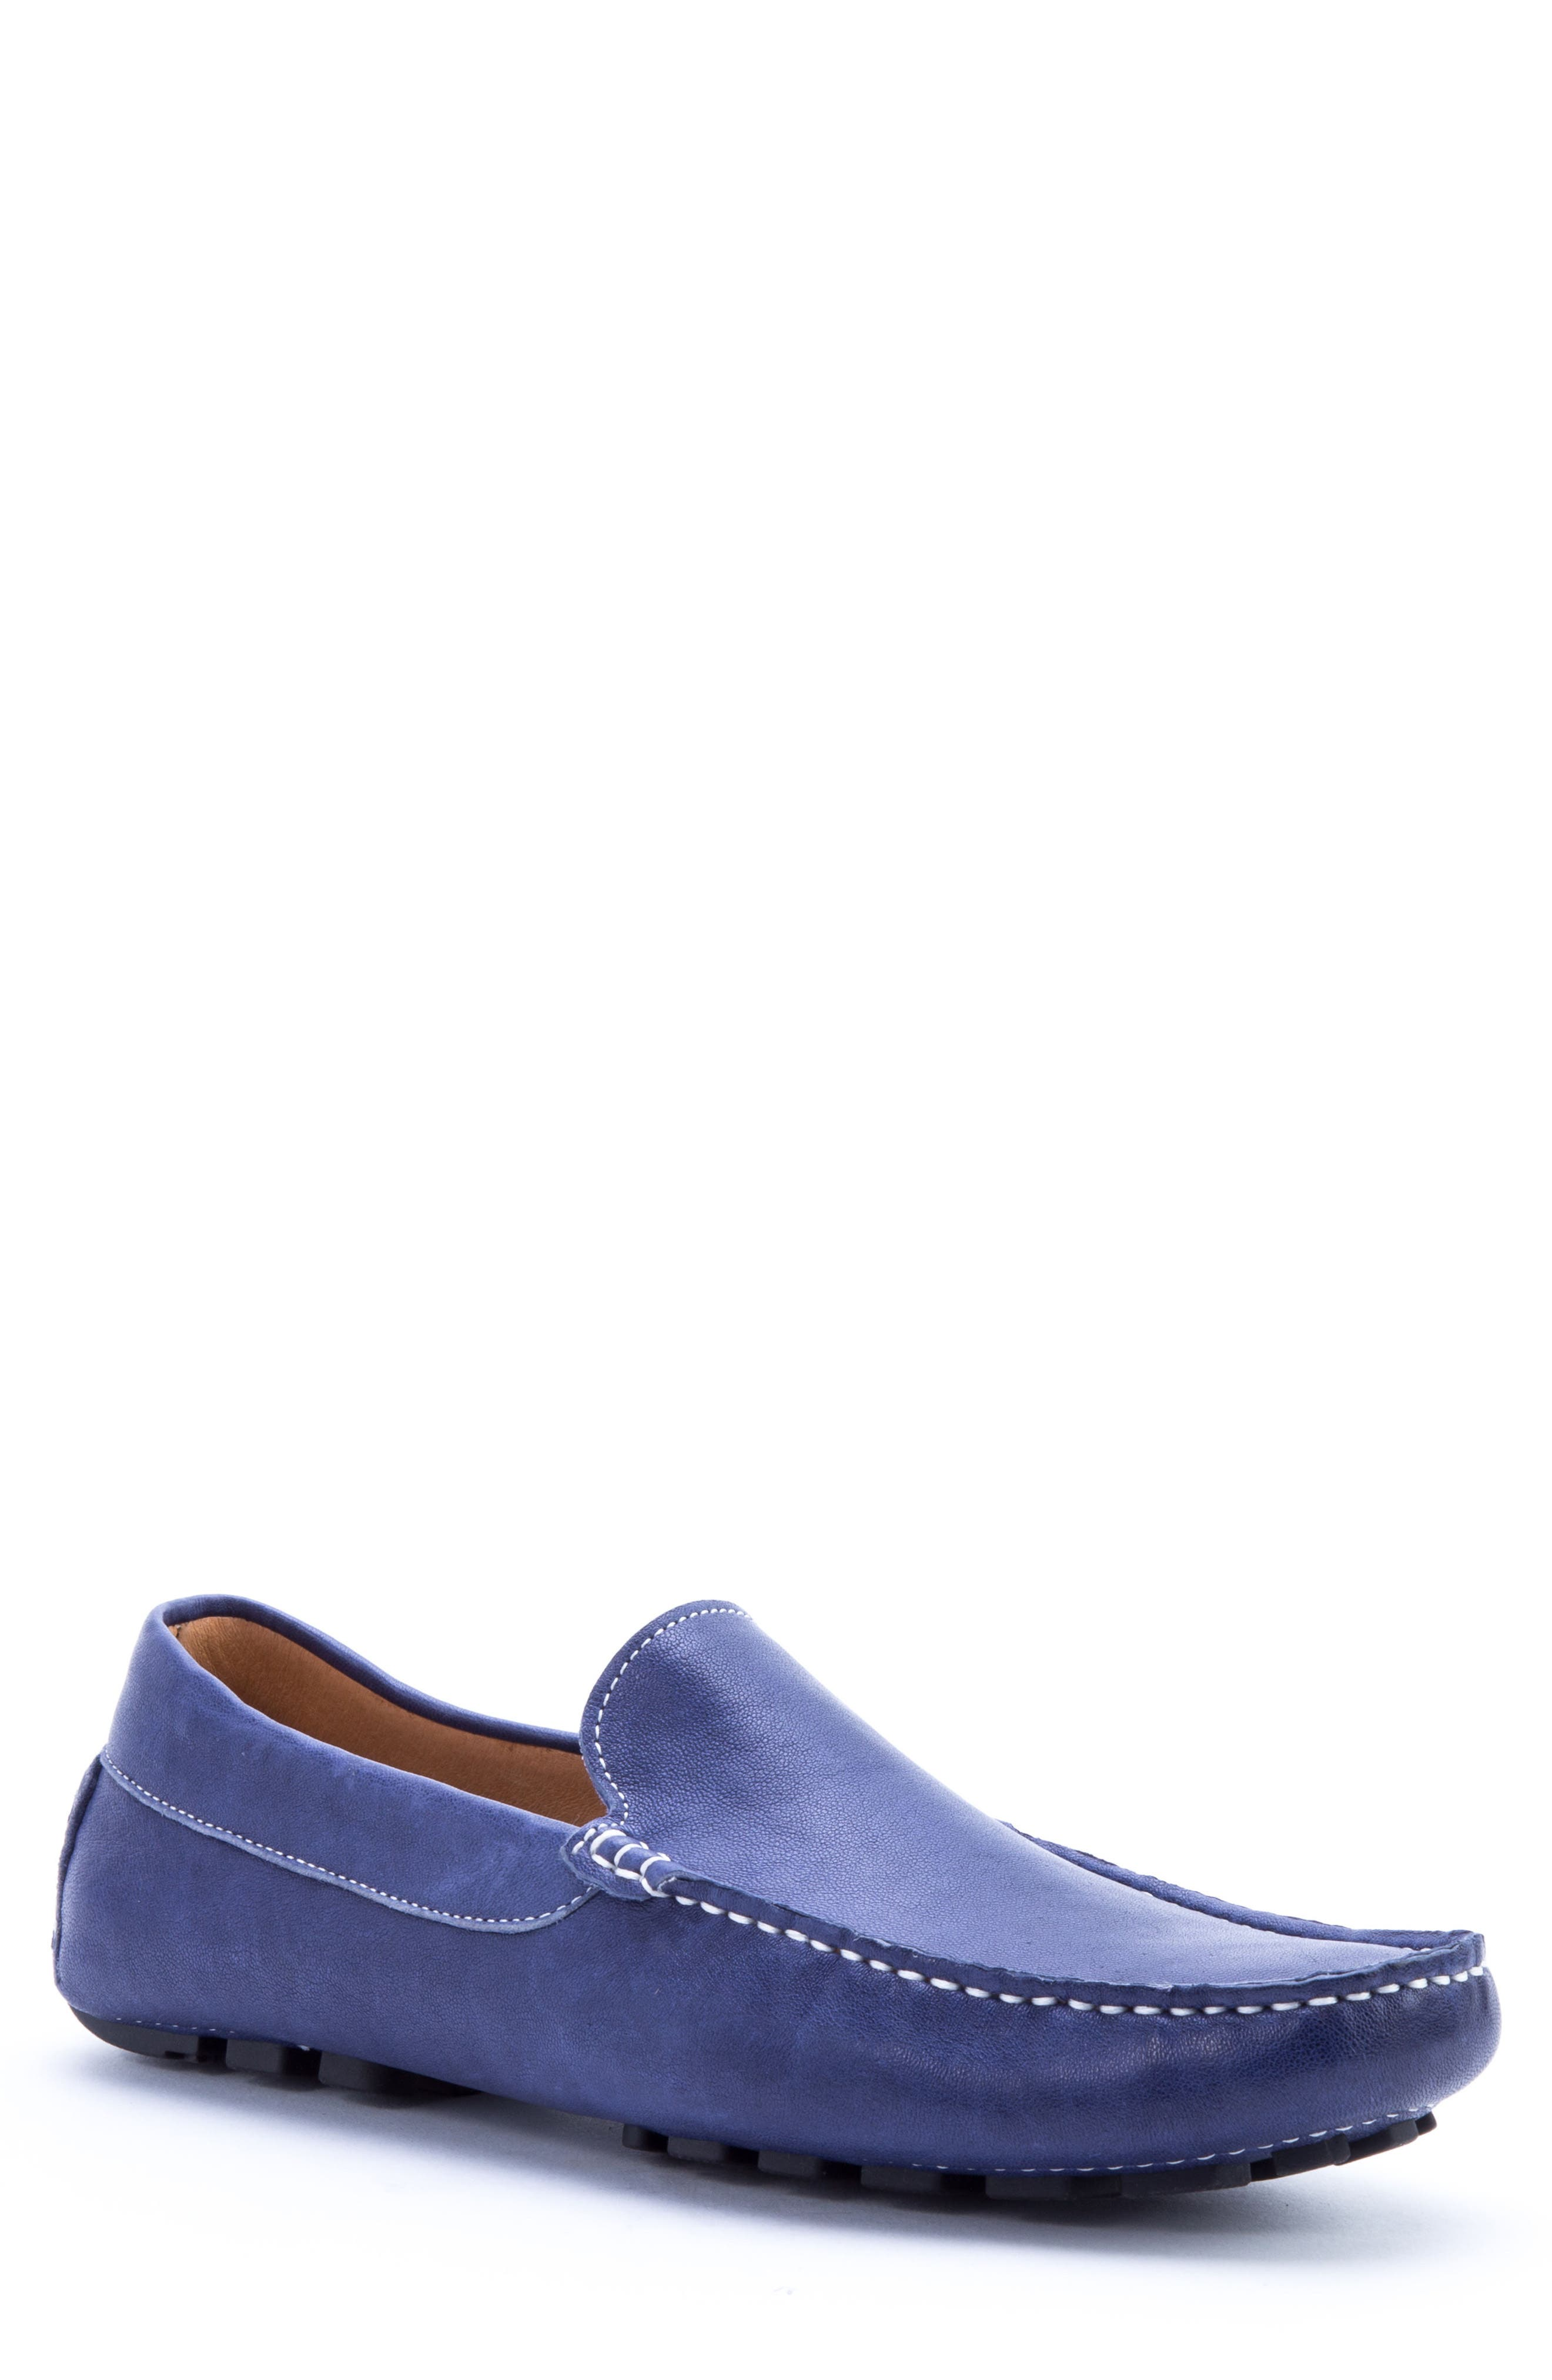 Picasso 3 Moc Toe Driving Loafer,                         Main,                         color, Blue Leather